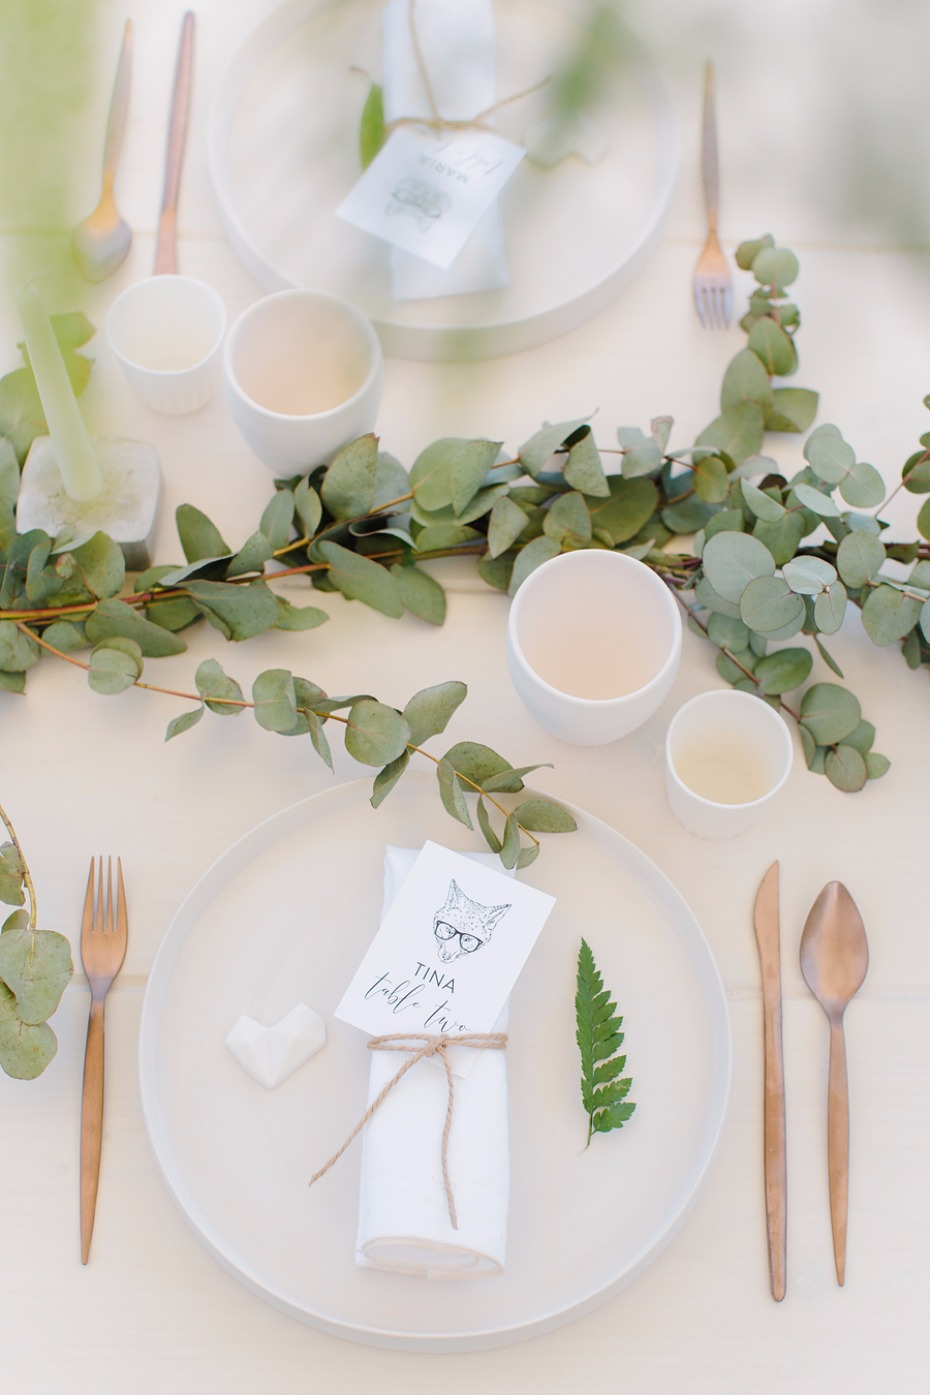 Green, white and copper table decor